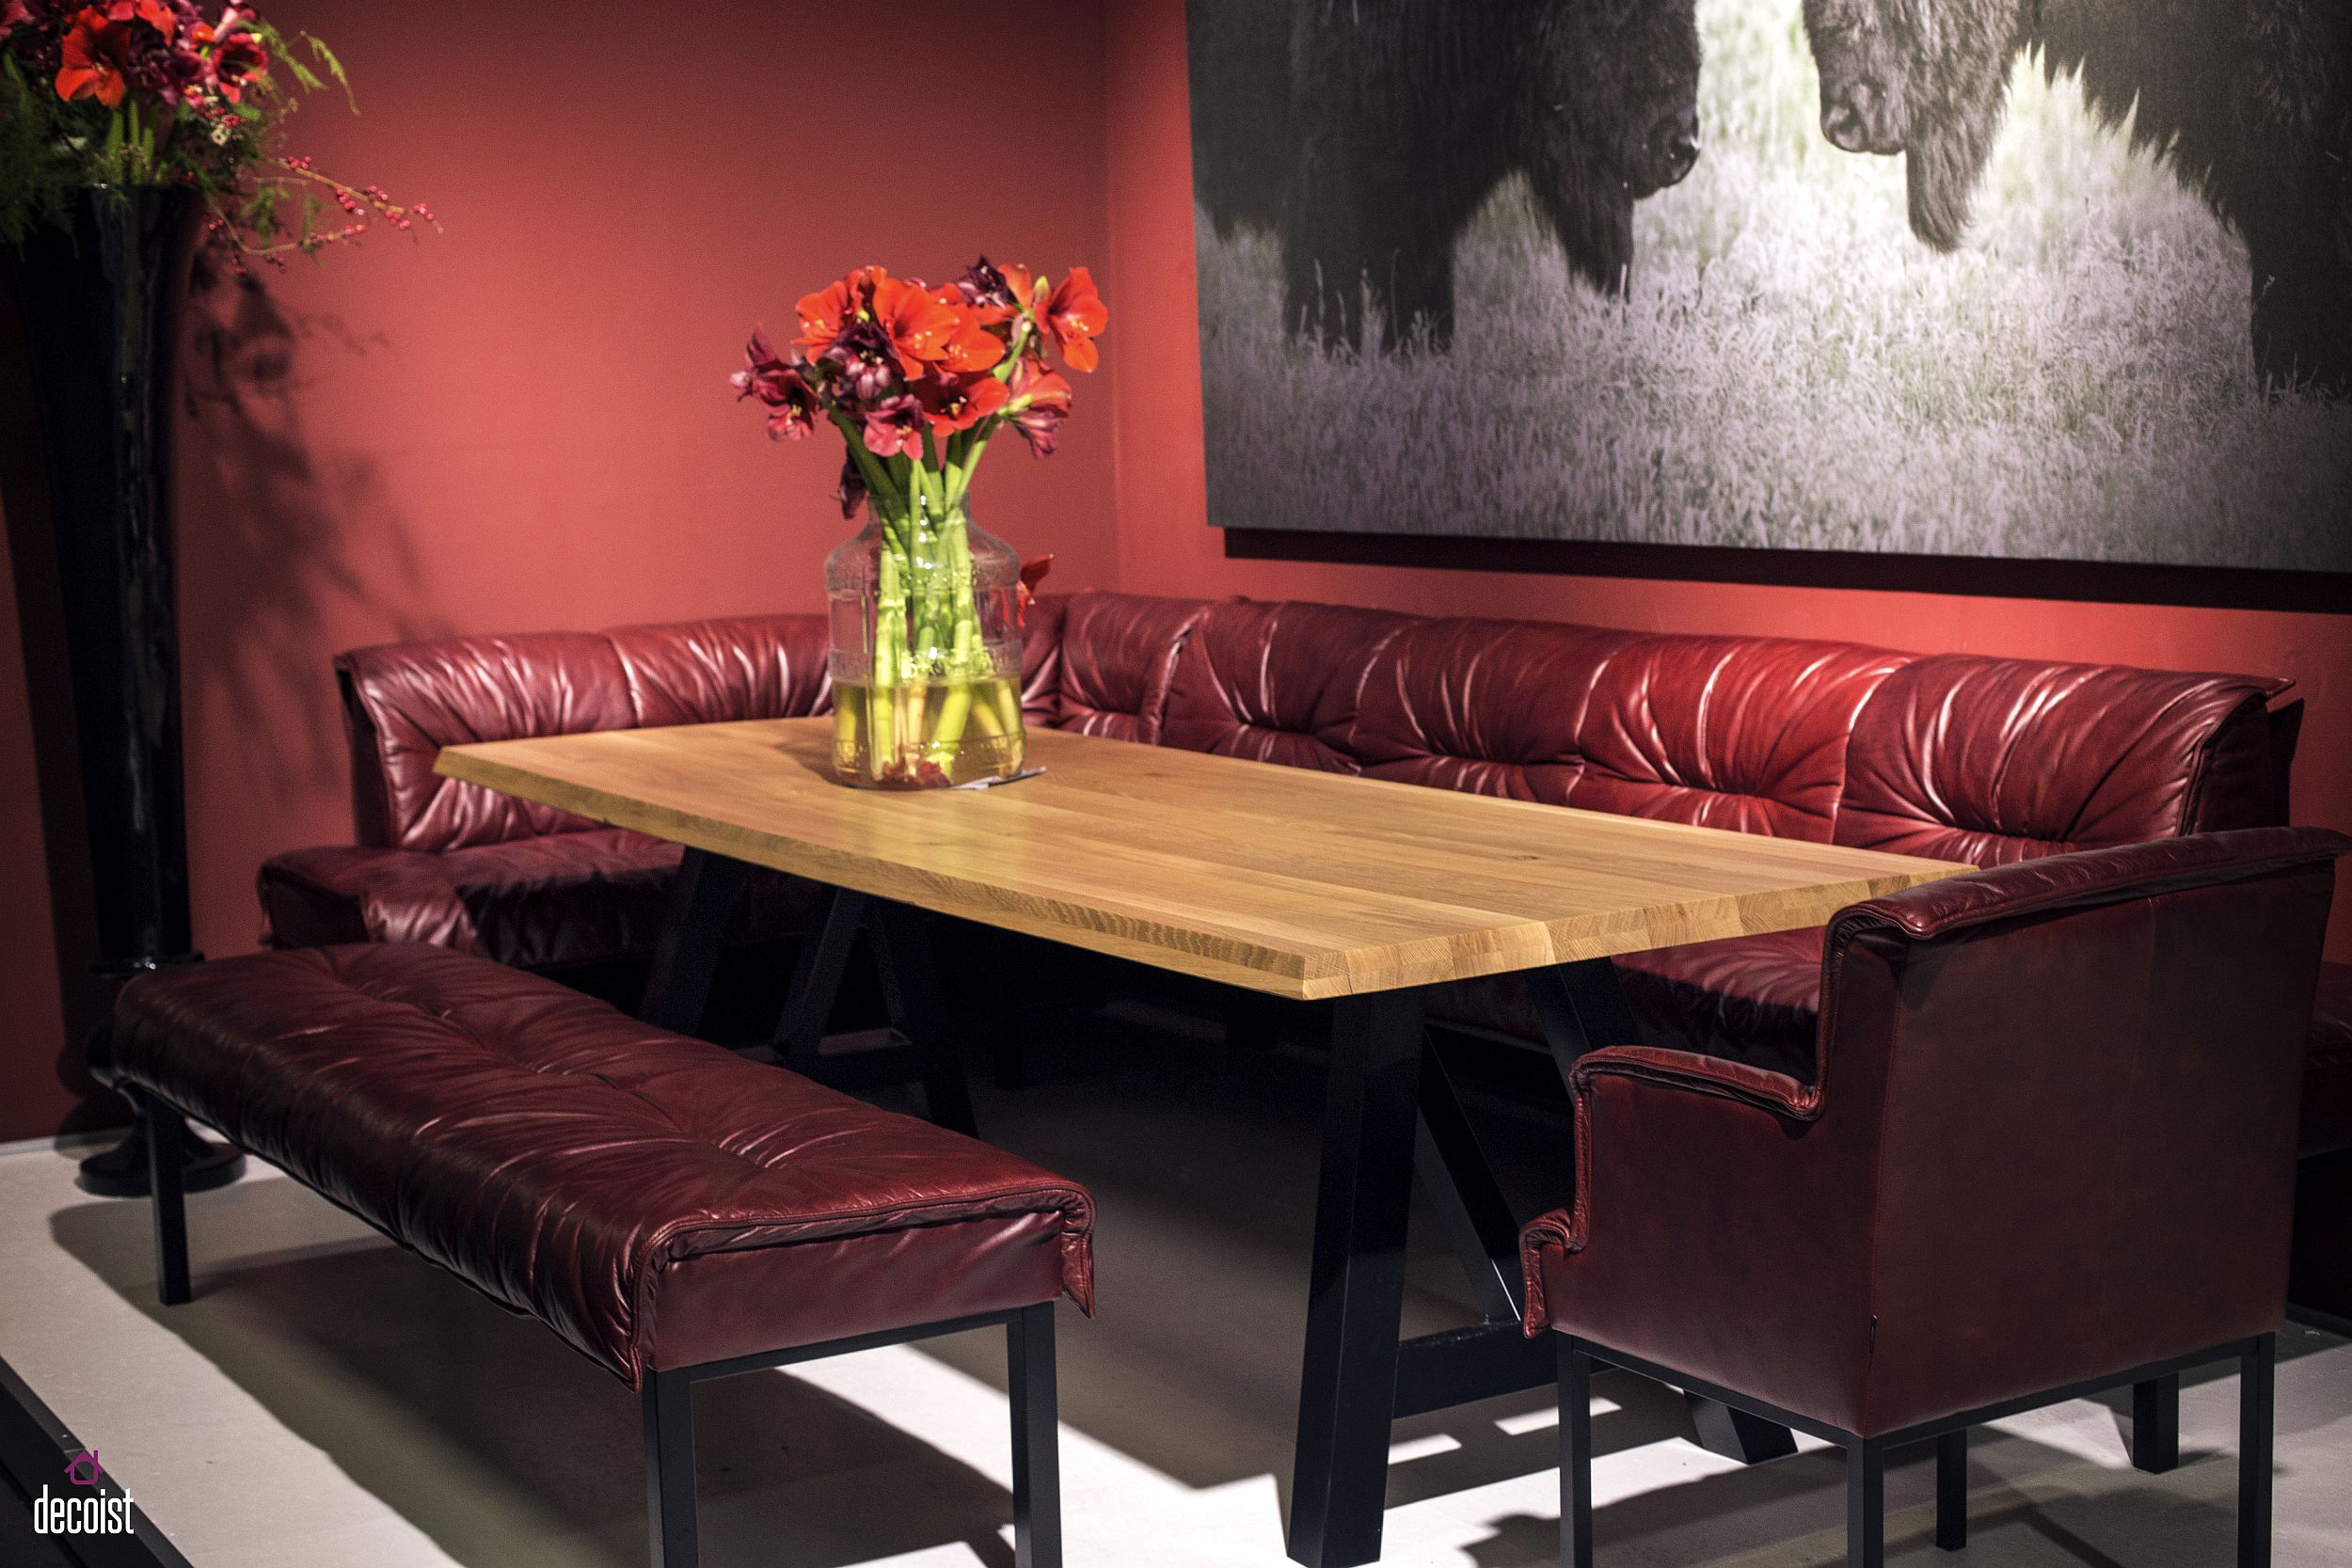 Comfy red banquette style seating along with a bold backdrop creates a stunning dining area